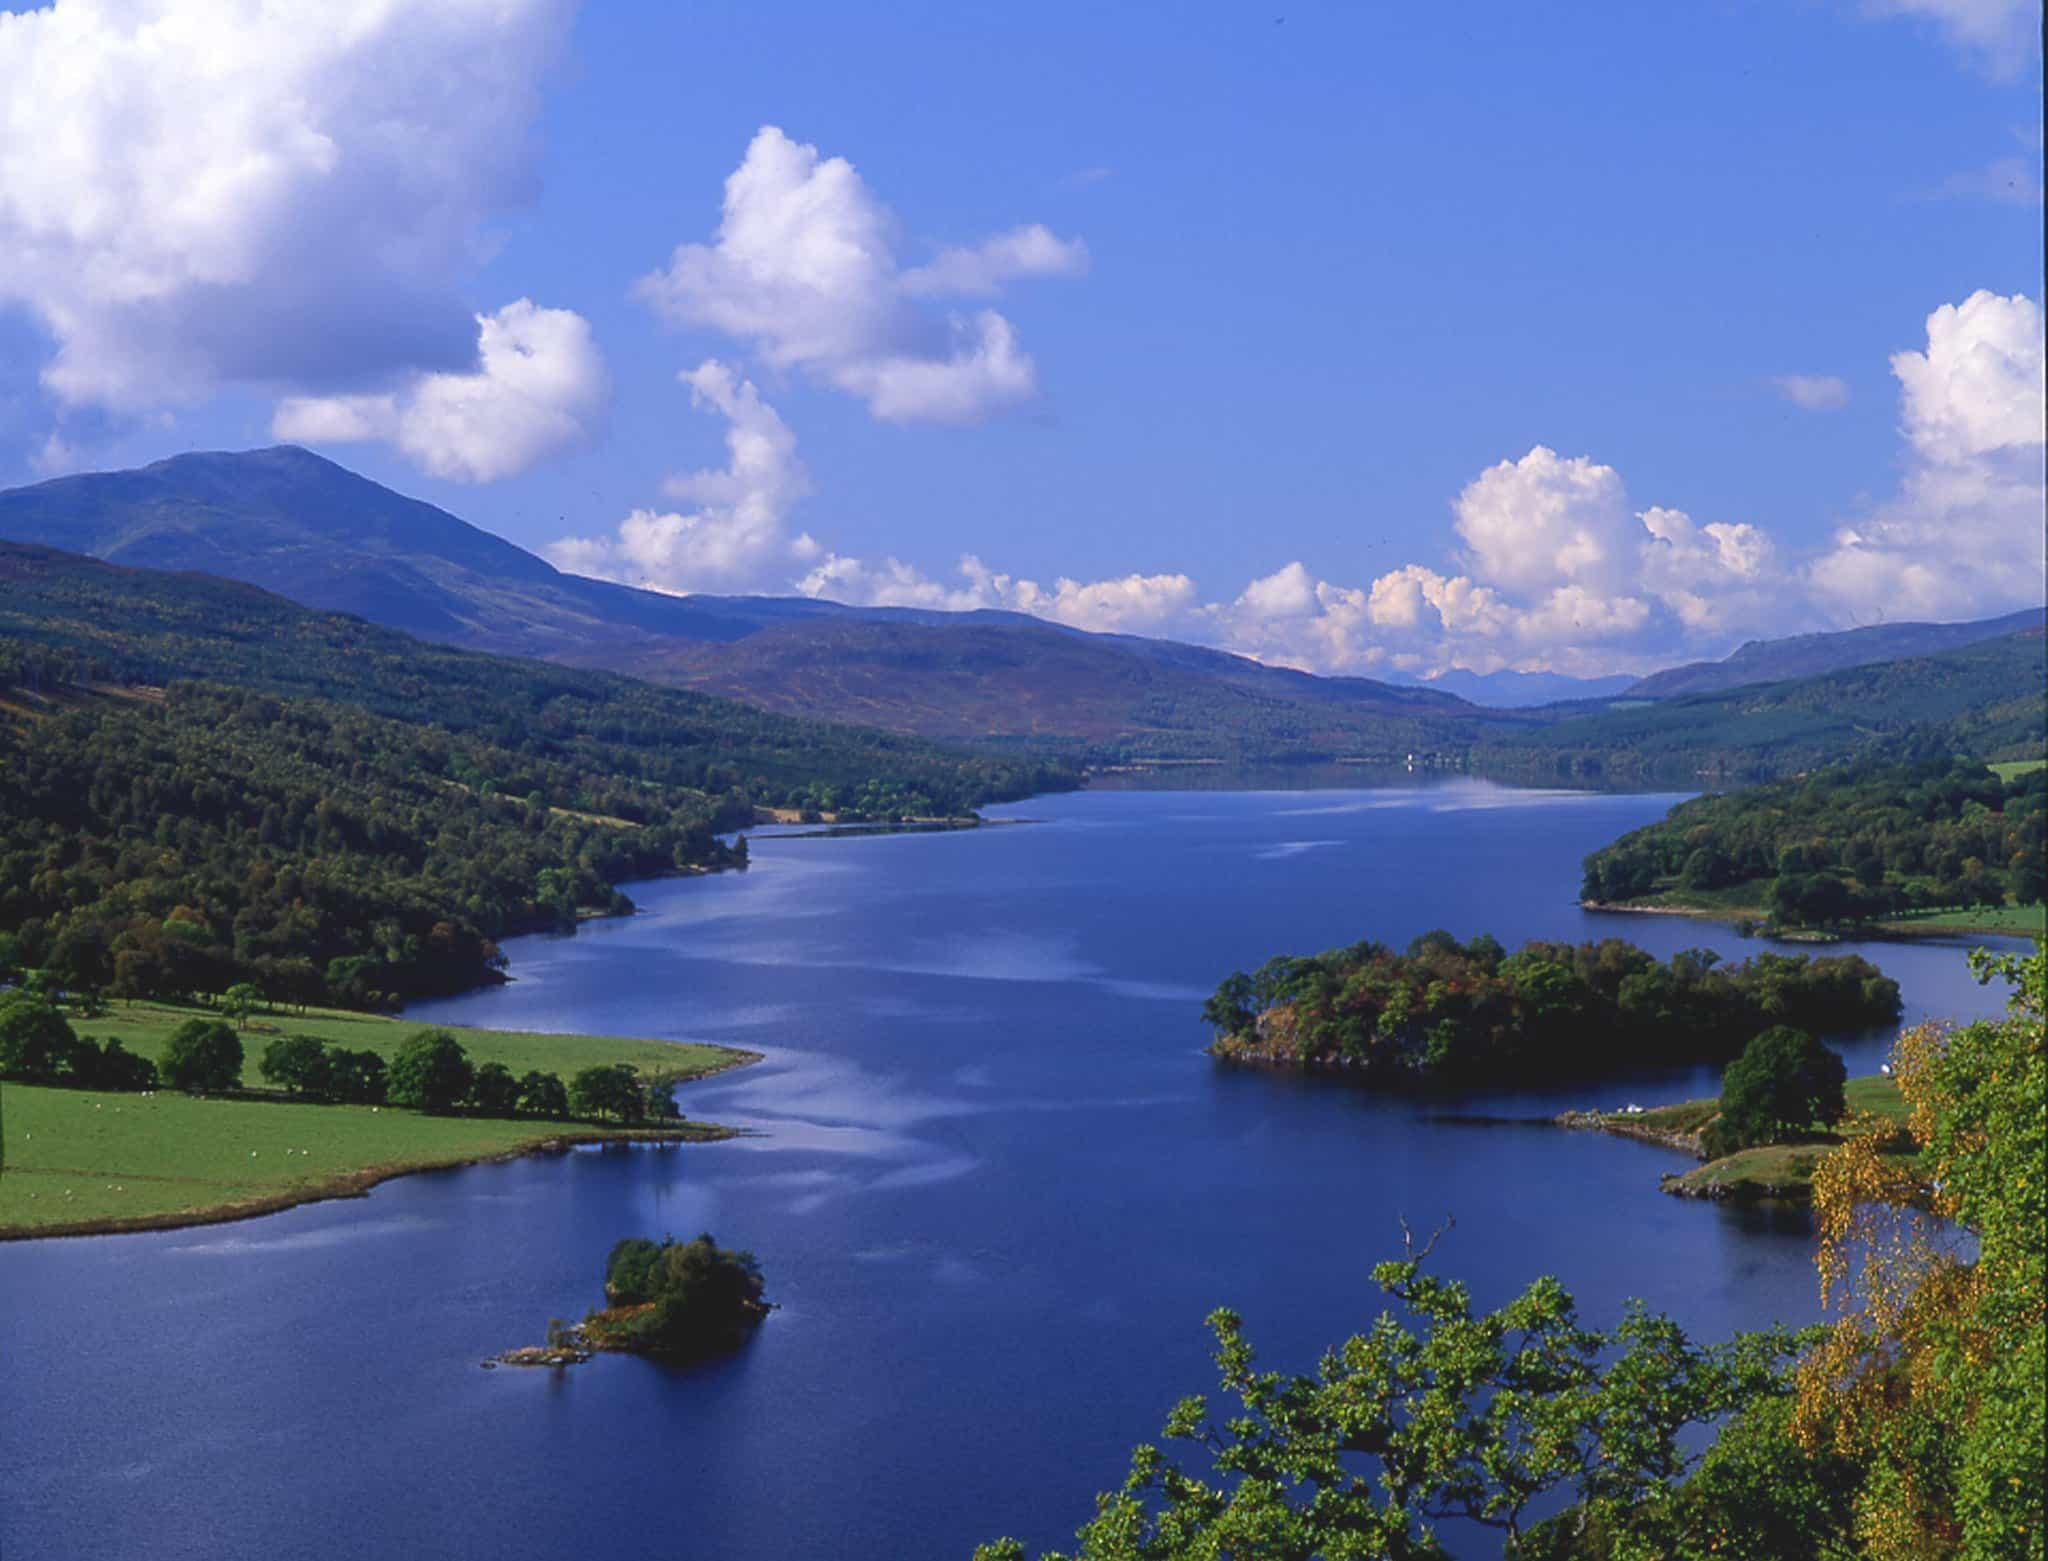 Holiday in Scotland. Visit Queen's View Pitlochry